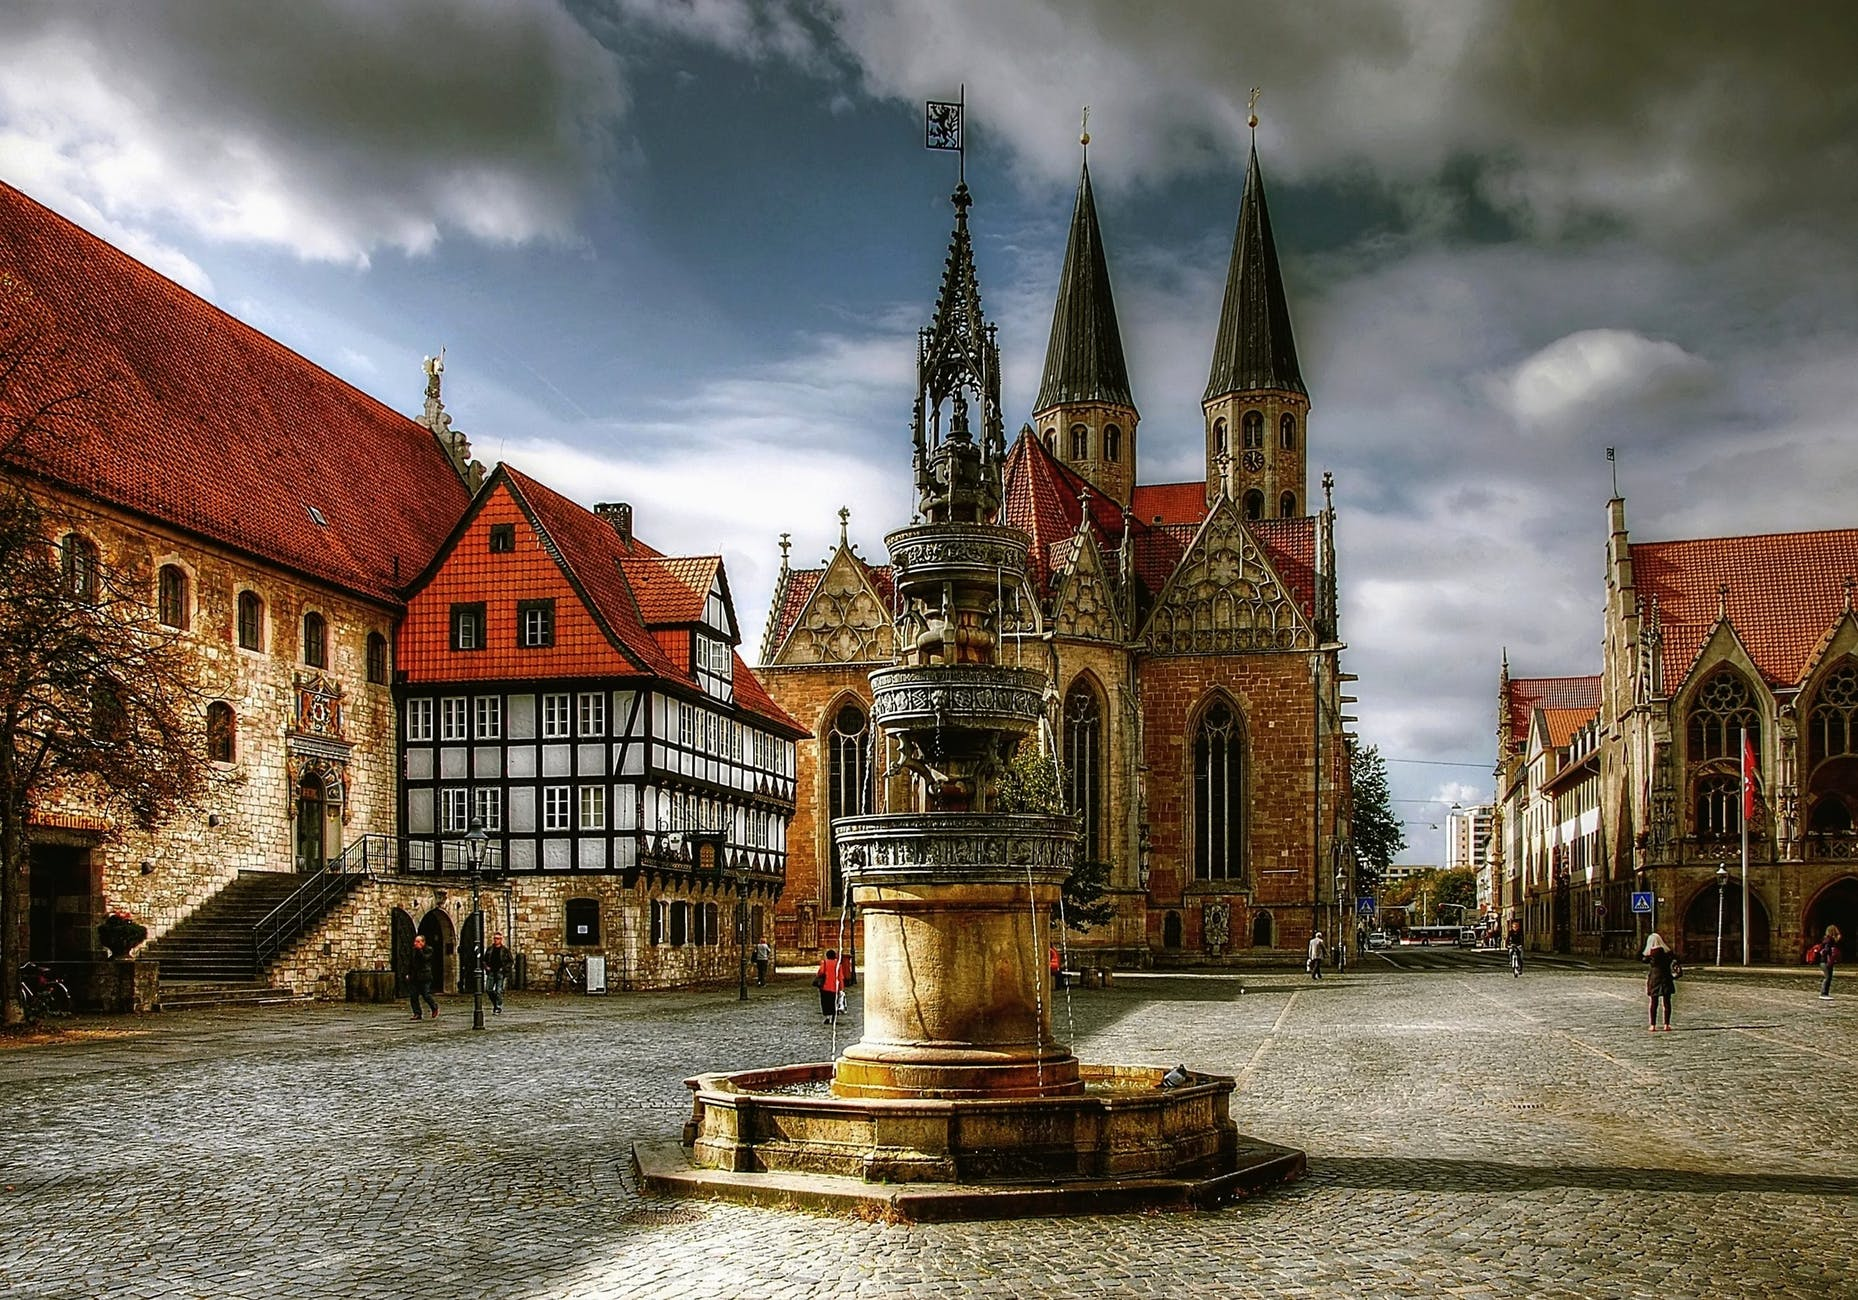 MOST FAMOUS CHURCHES IN THE WORLD | BIGGEST CHURCHES